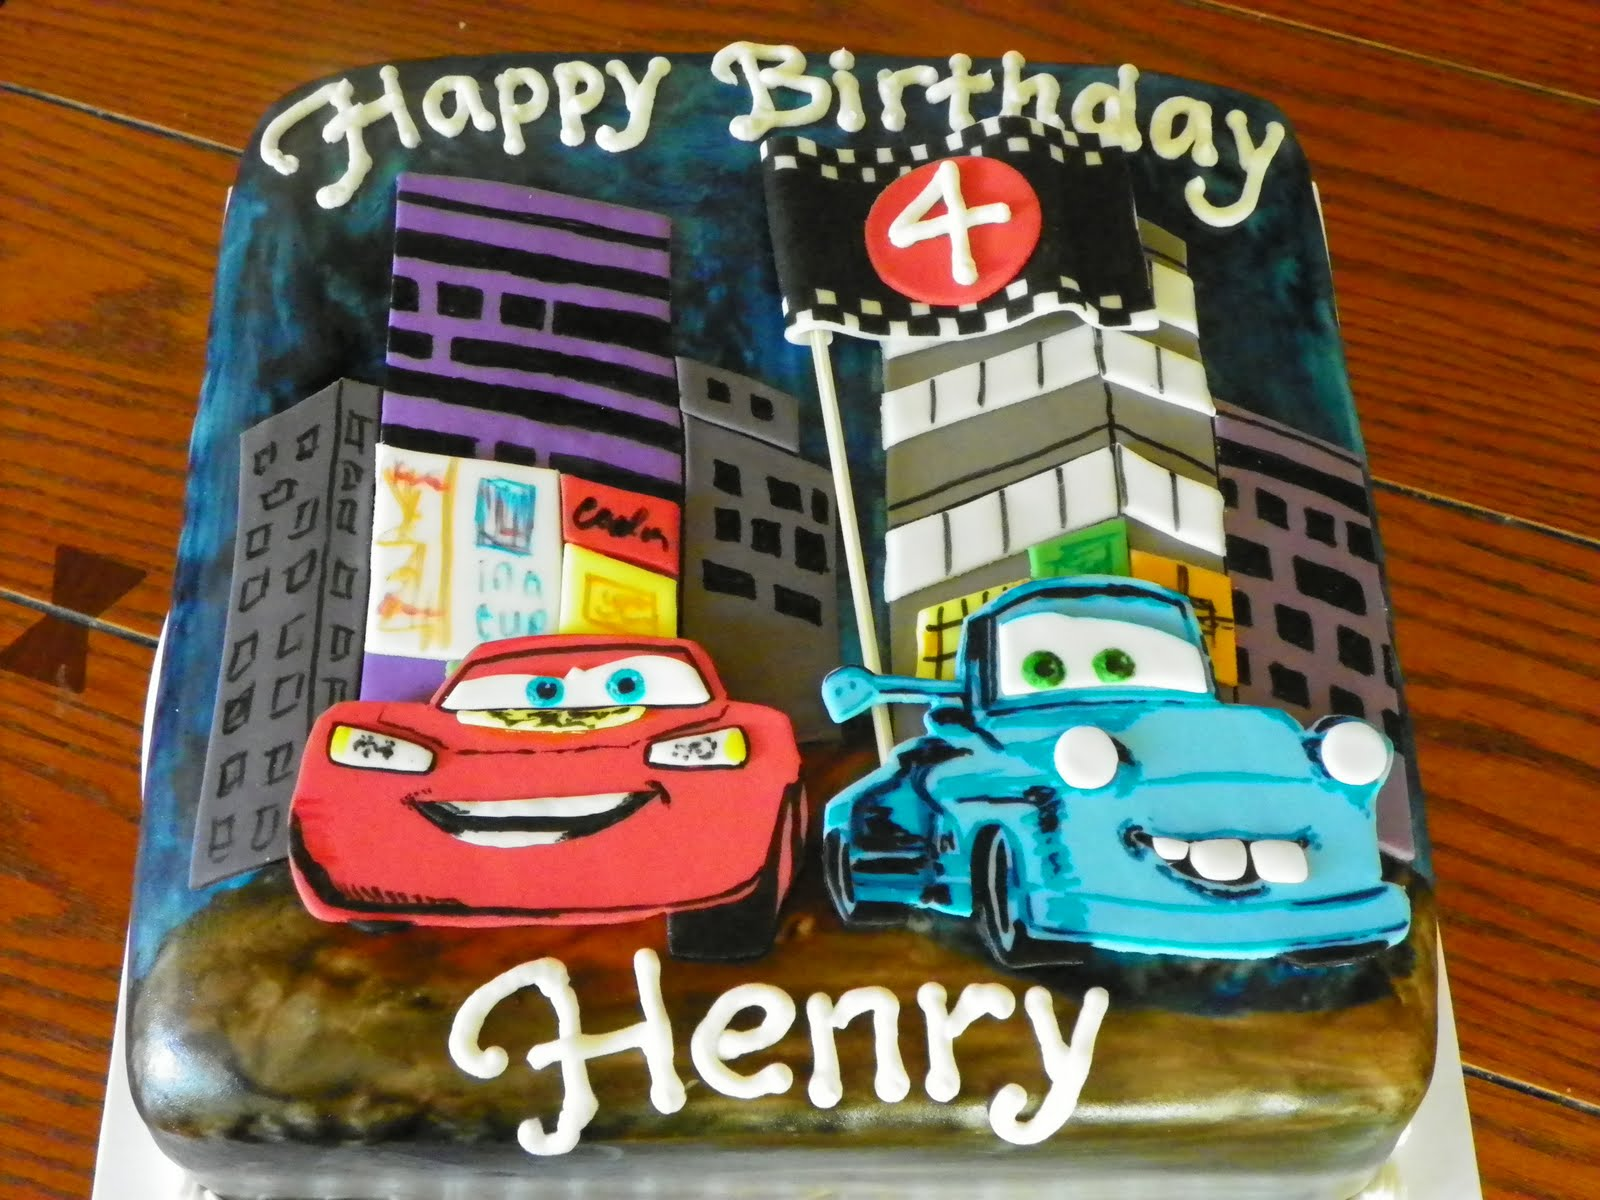 Disney Pixar Cars Cake Design : 404 (Page Not Found) Error - Ever feel like you re in the ...